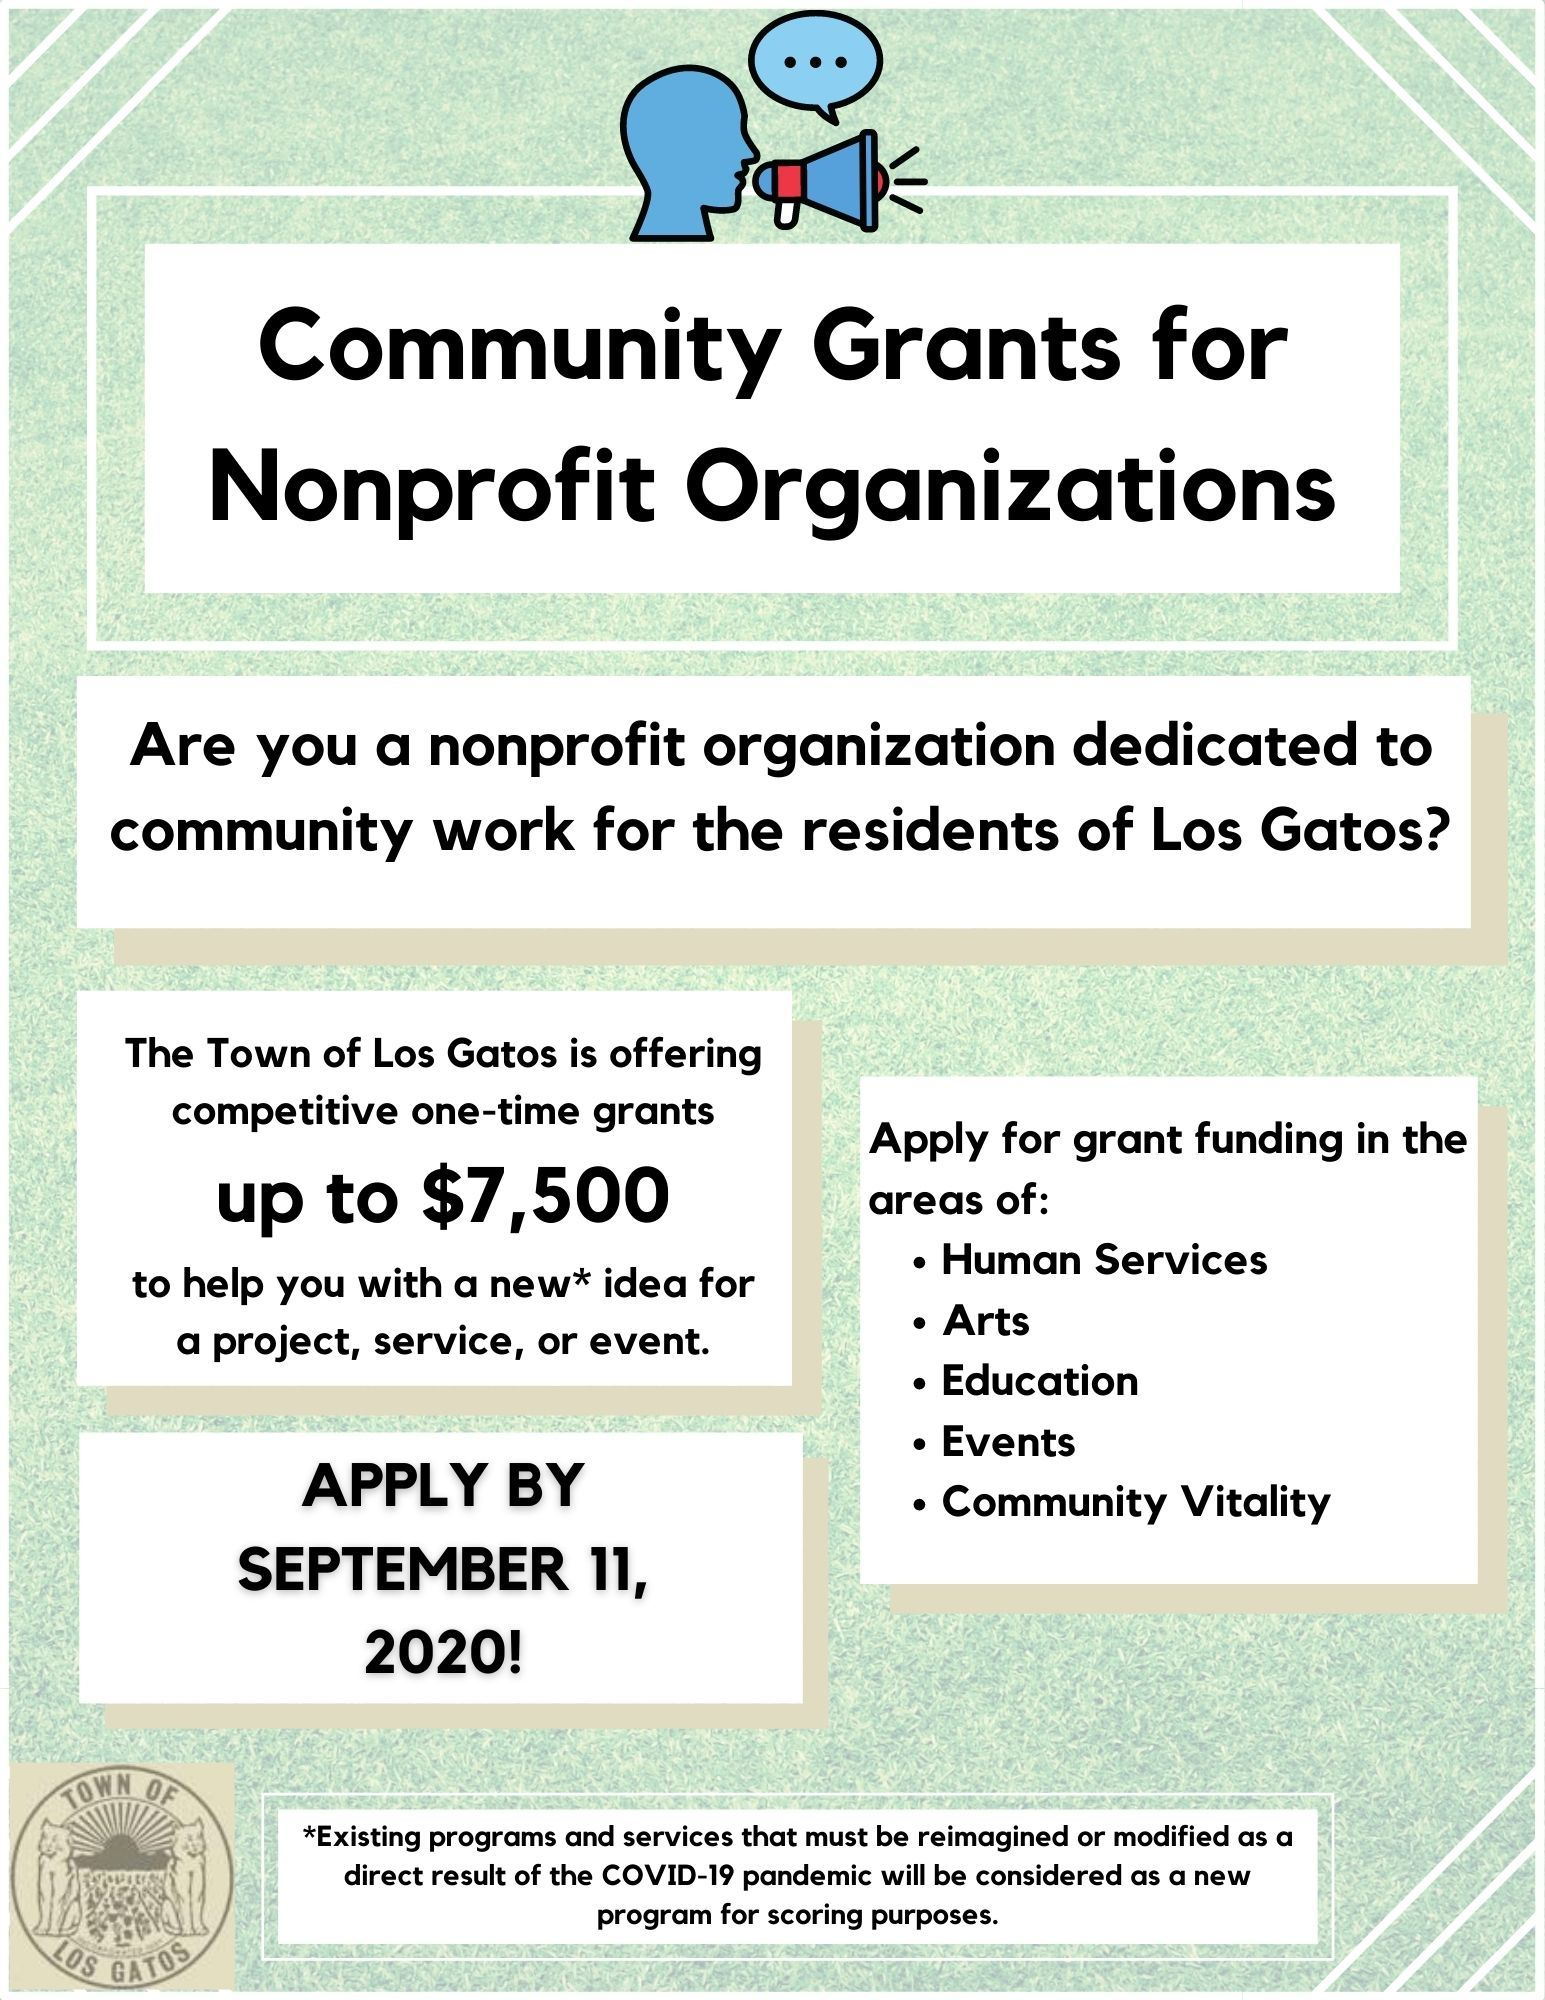 Community Grants for Nonprofit Organizations